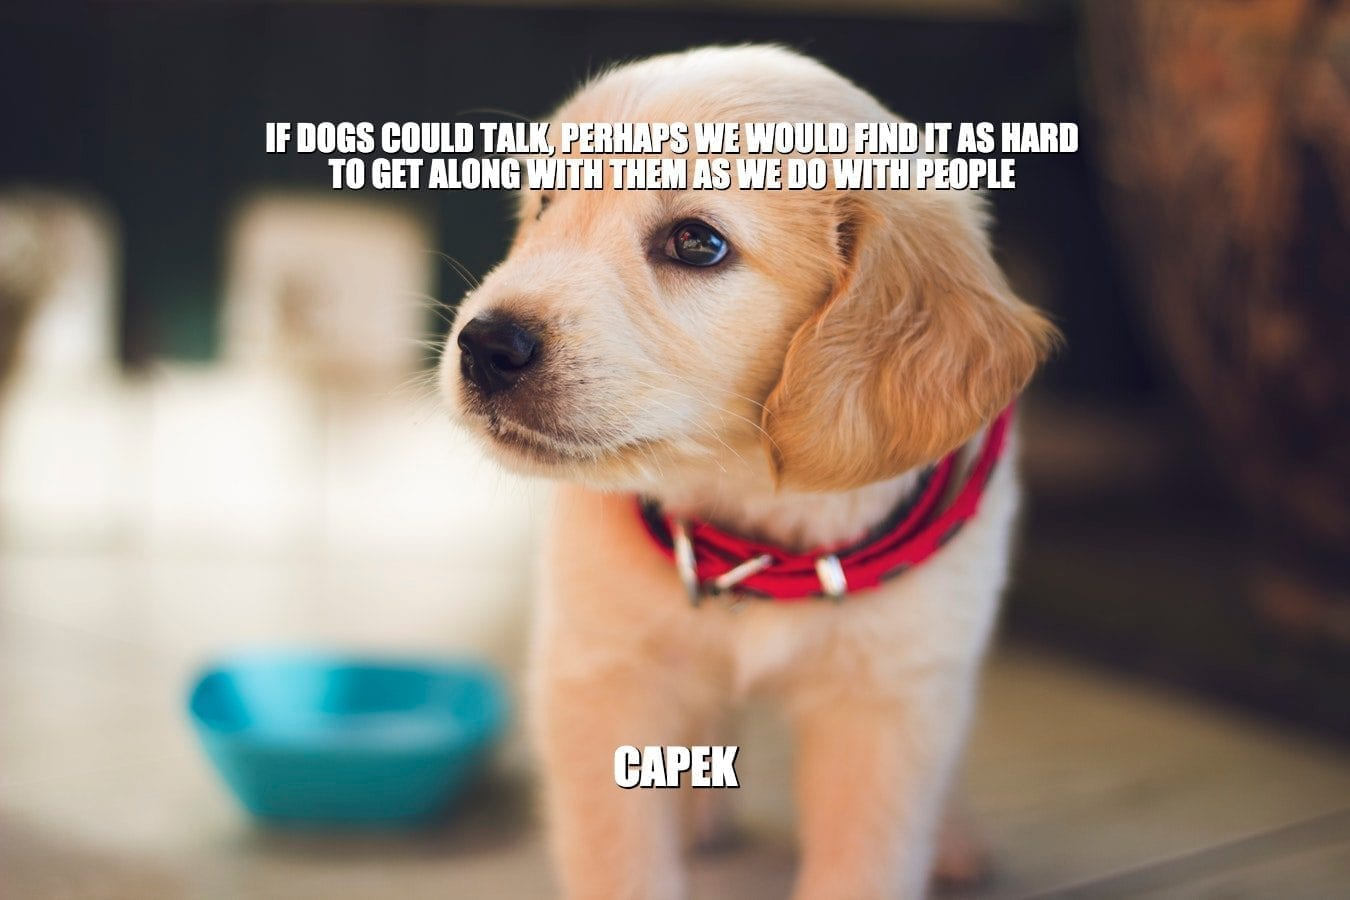 Daily Quotes: If Dogs Could Talk, Perhaps We Would Find It As Hard To Get Along With Them As We Do With People petworldglobal.com